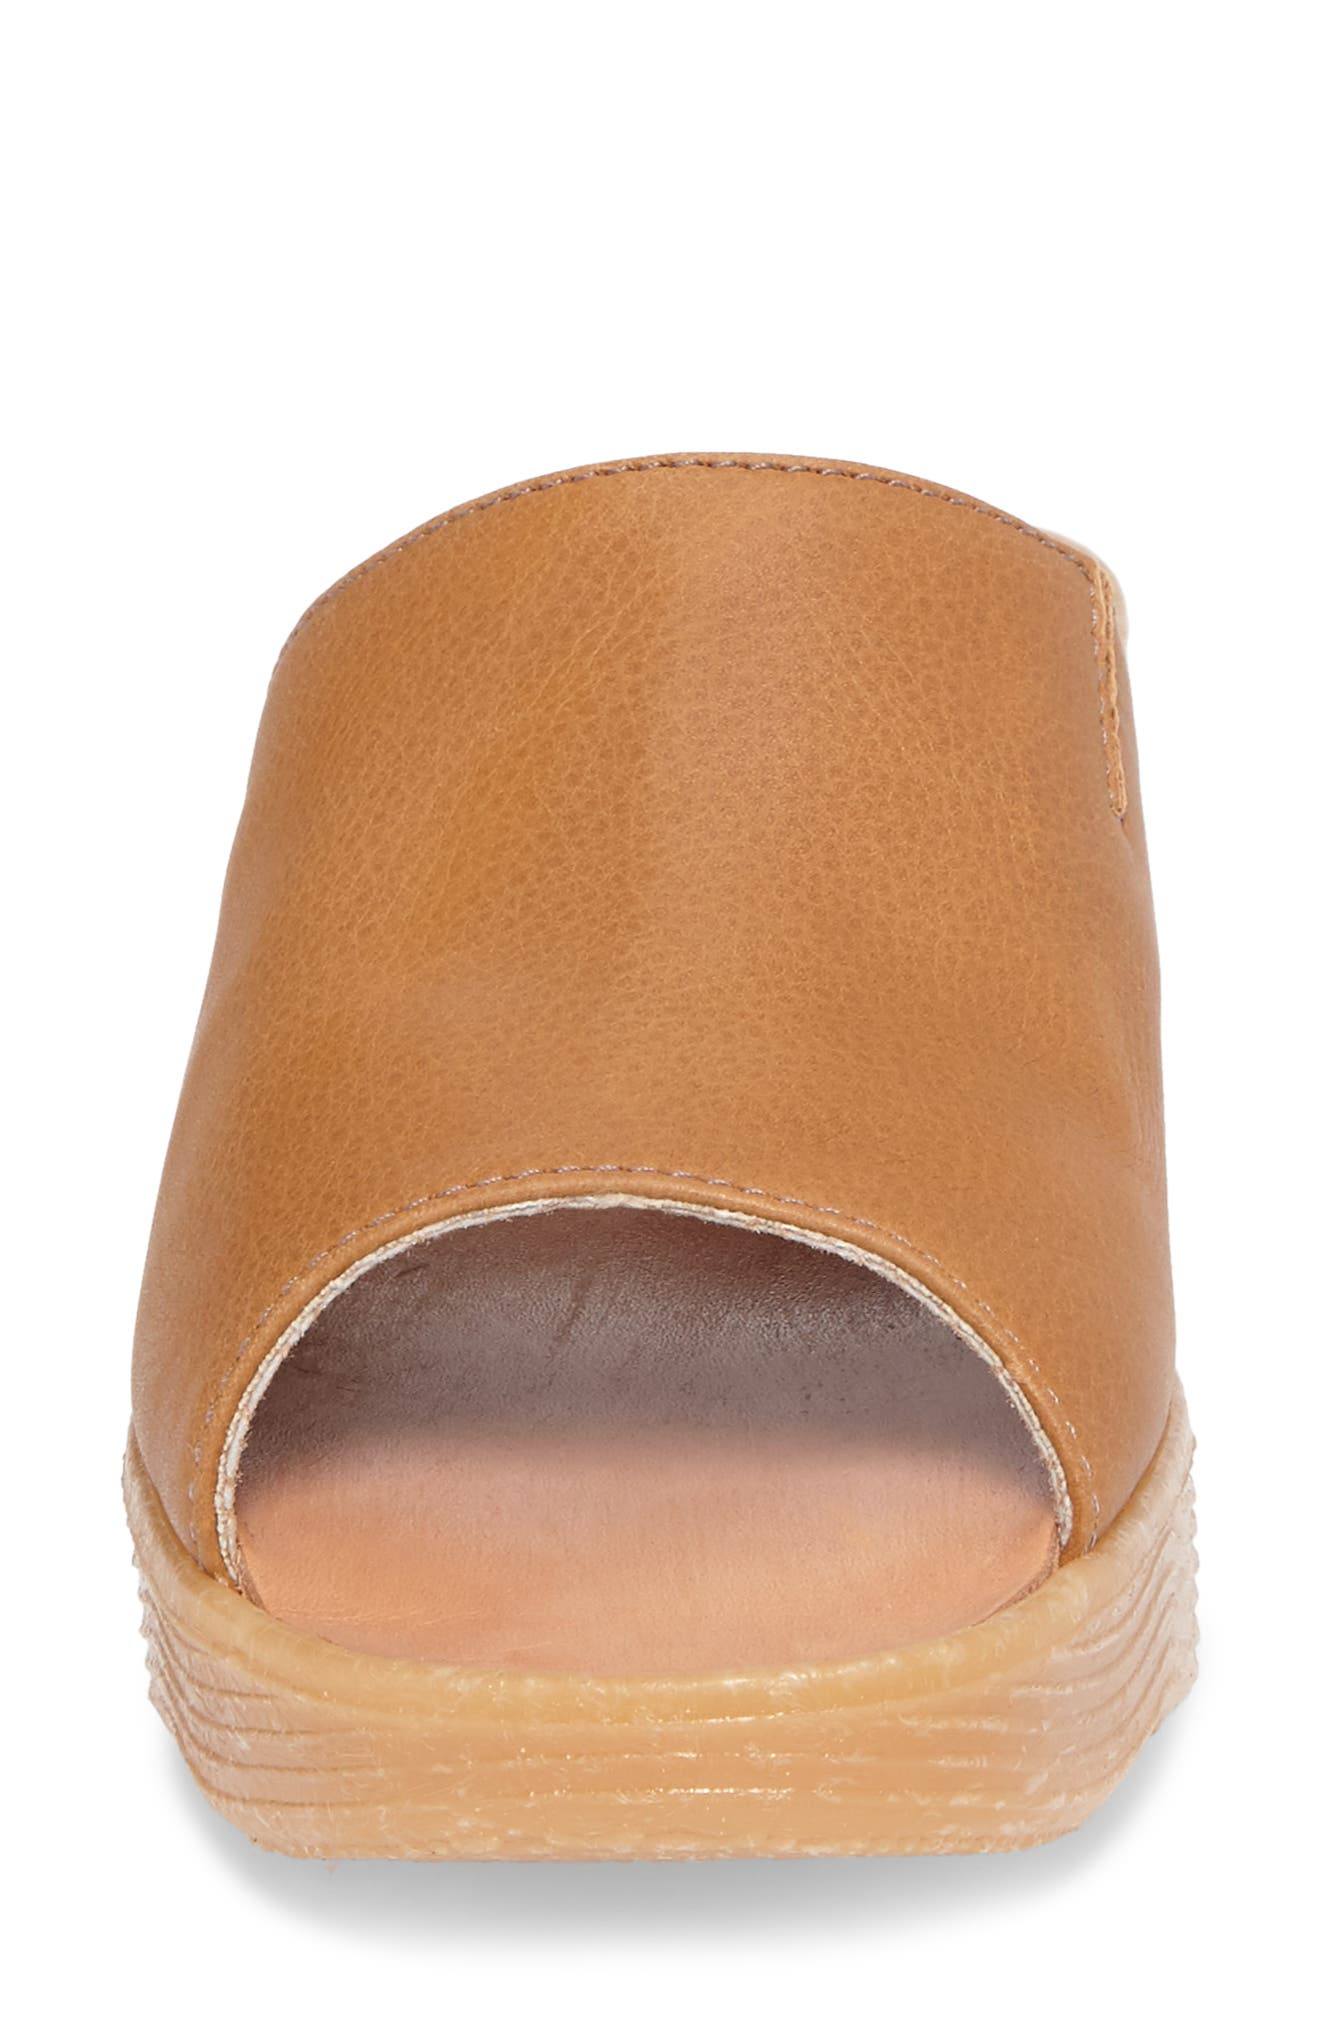 Slide N Sleek Wedge Slide Sandal,                             Alternate thumbnail 4, color,                             COGNAC LEATHER